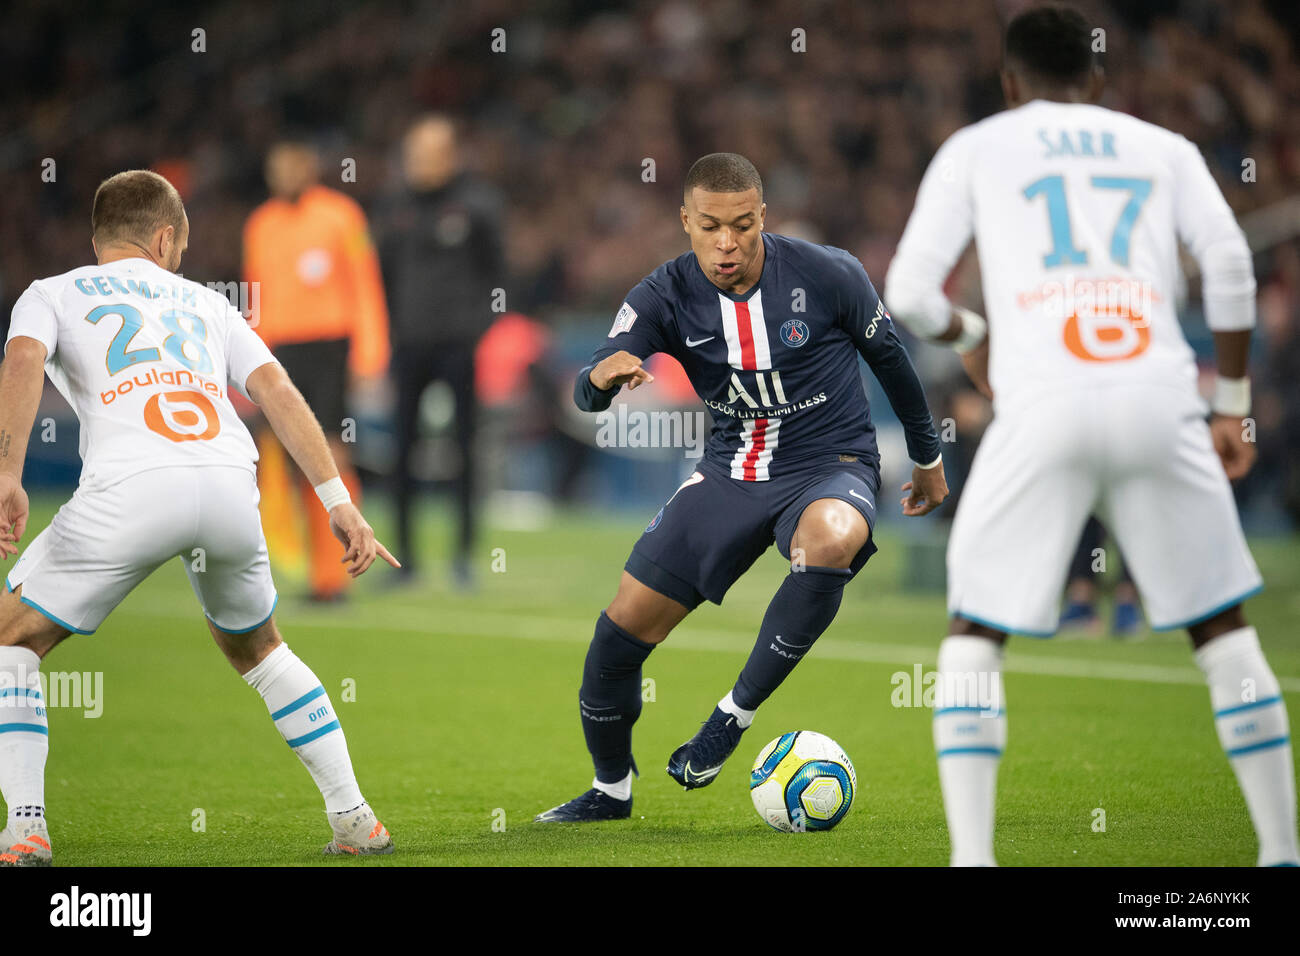 Bouna Sarr High Resolution Stock Photography and Images - Alamy